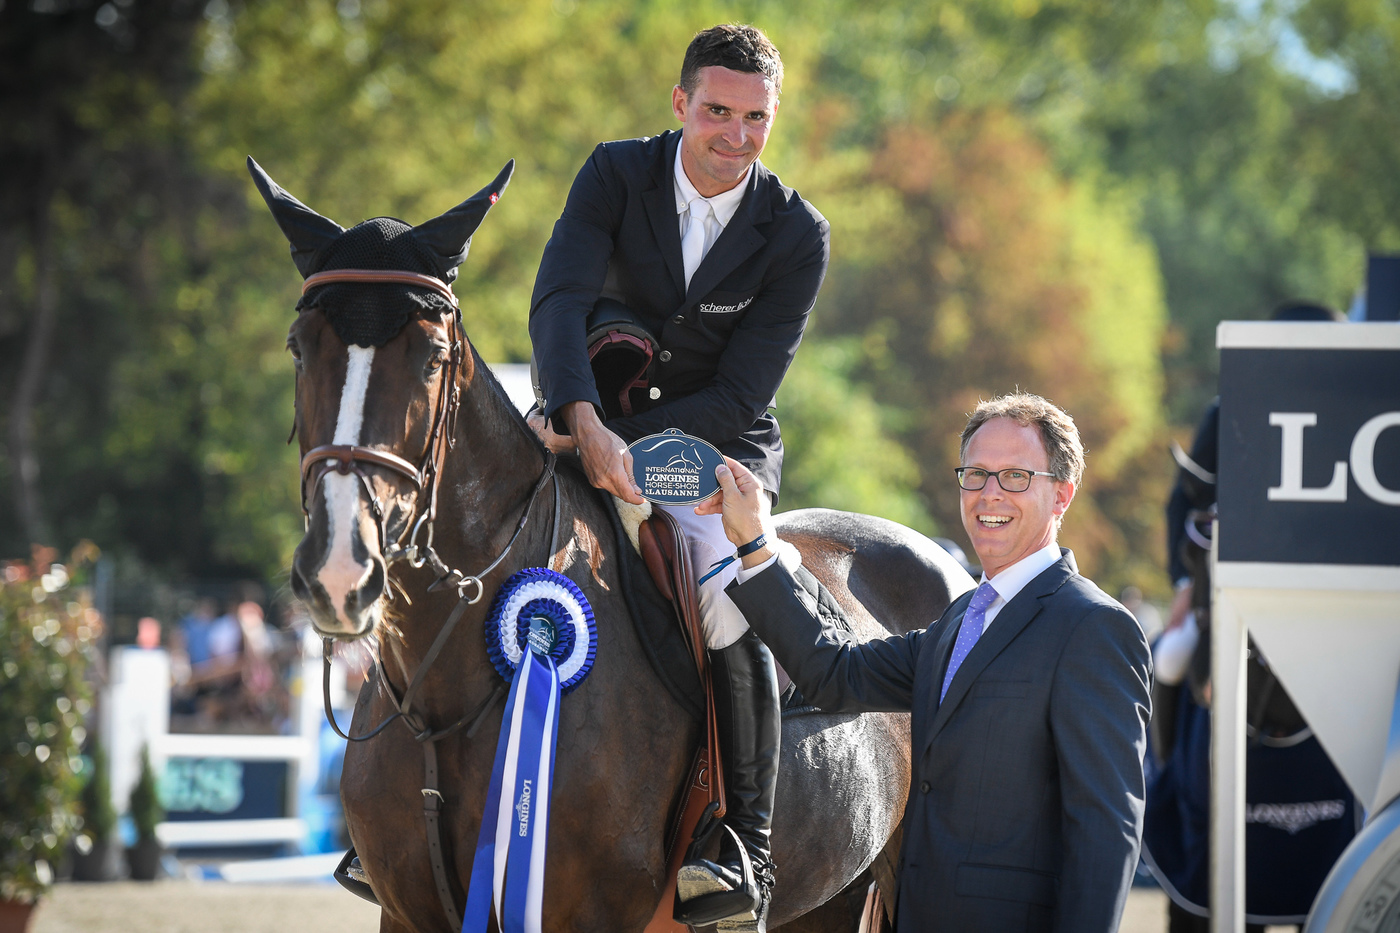 Longines Show Jumping Event: Robert Whitaker (GBR) wins the Grand Prix Longines of the City of Lausanne 5